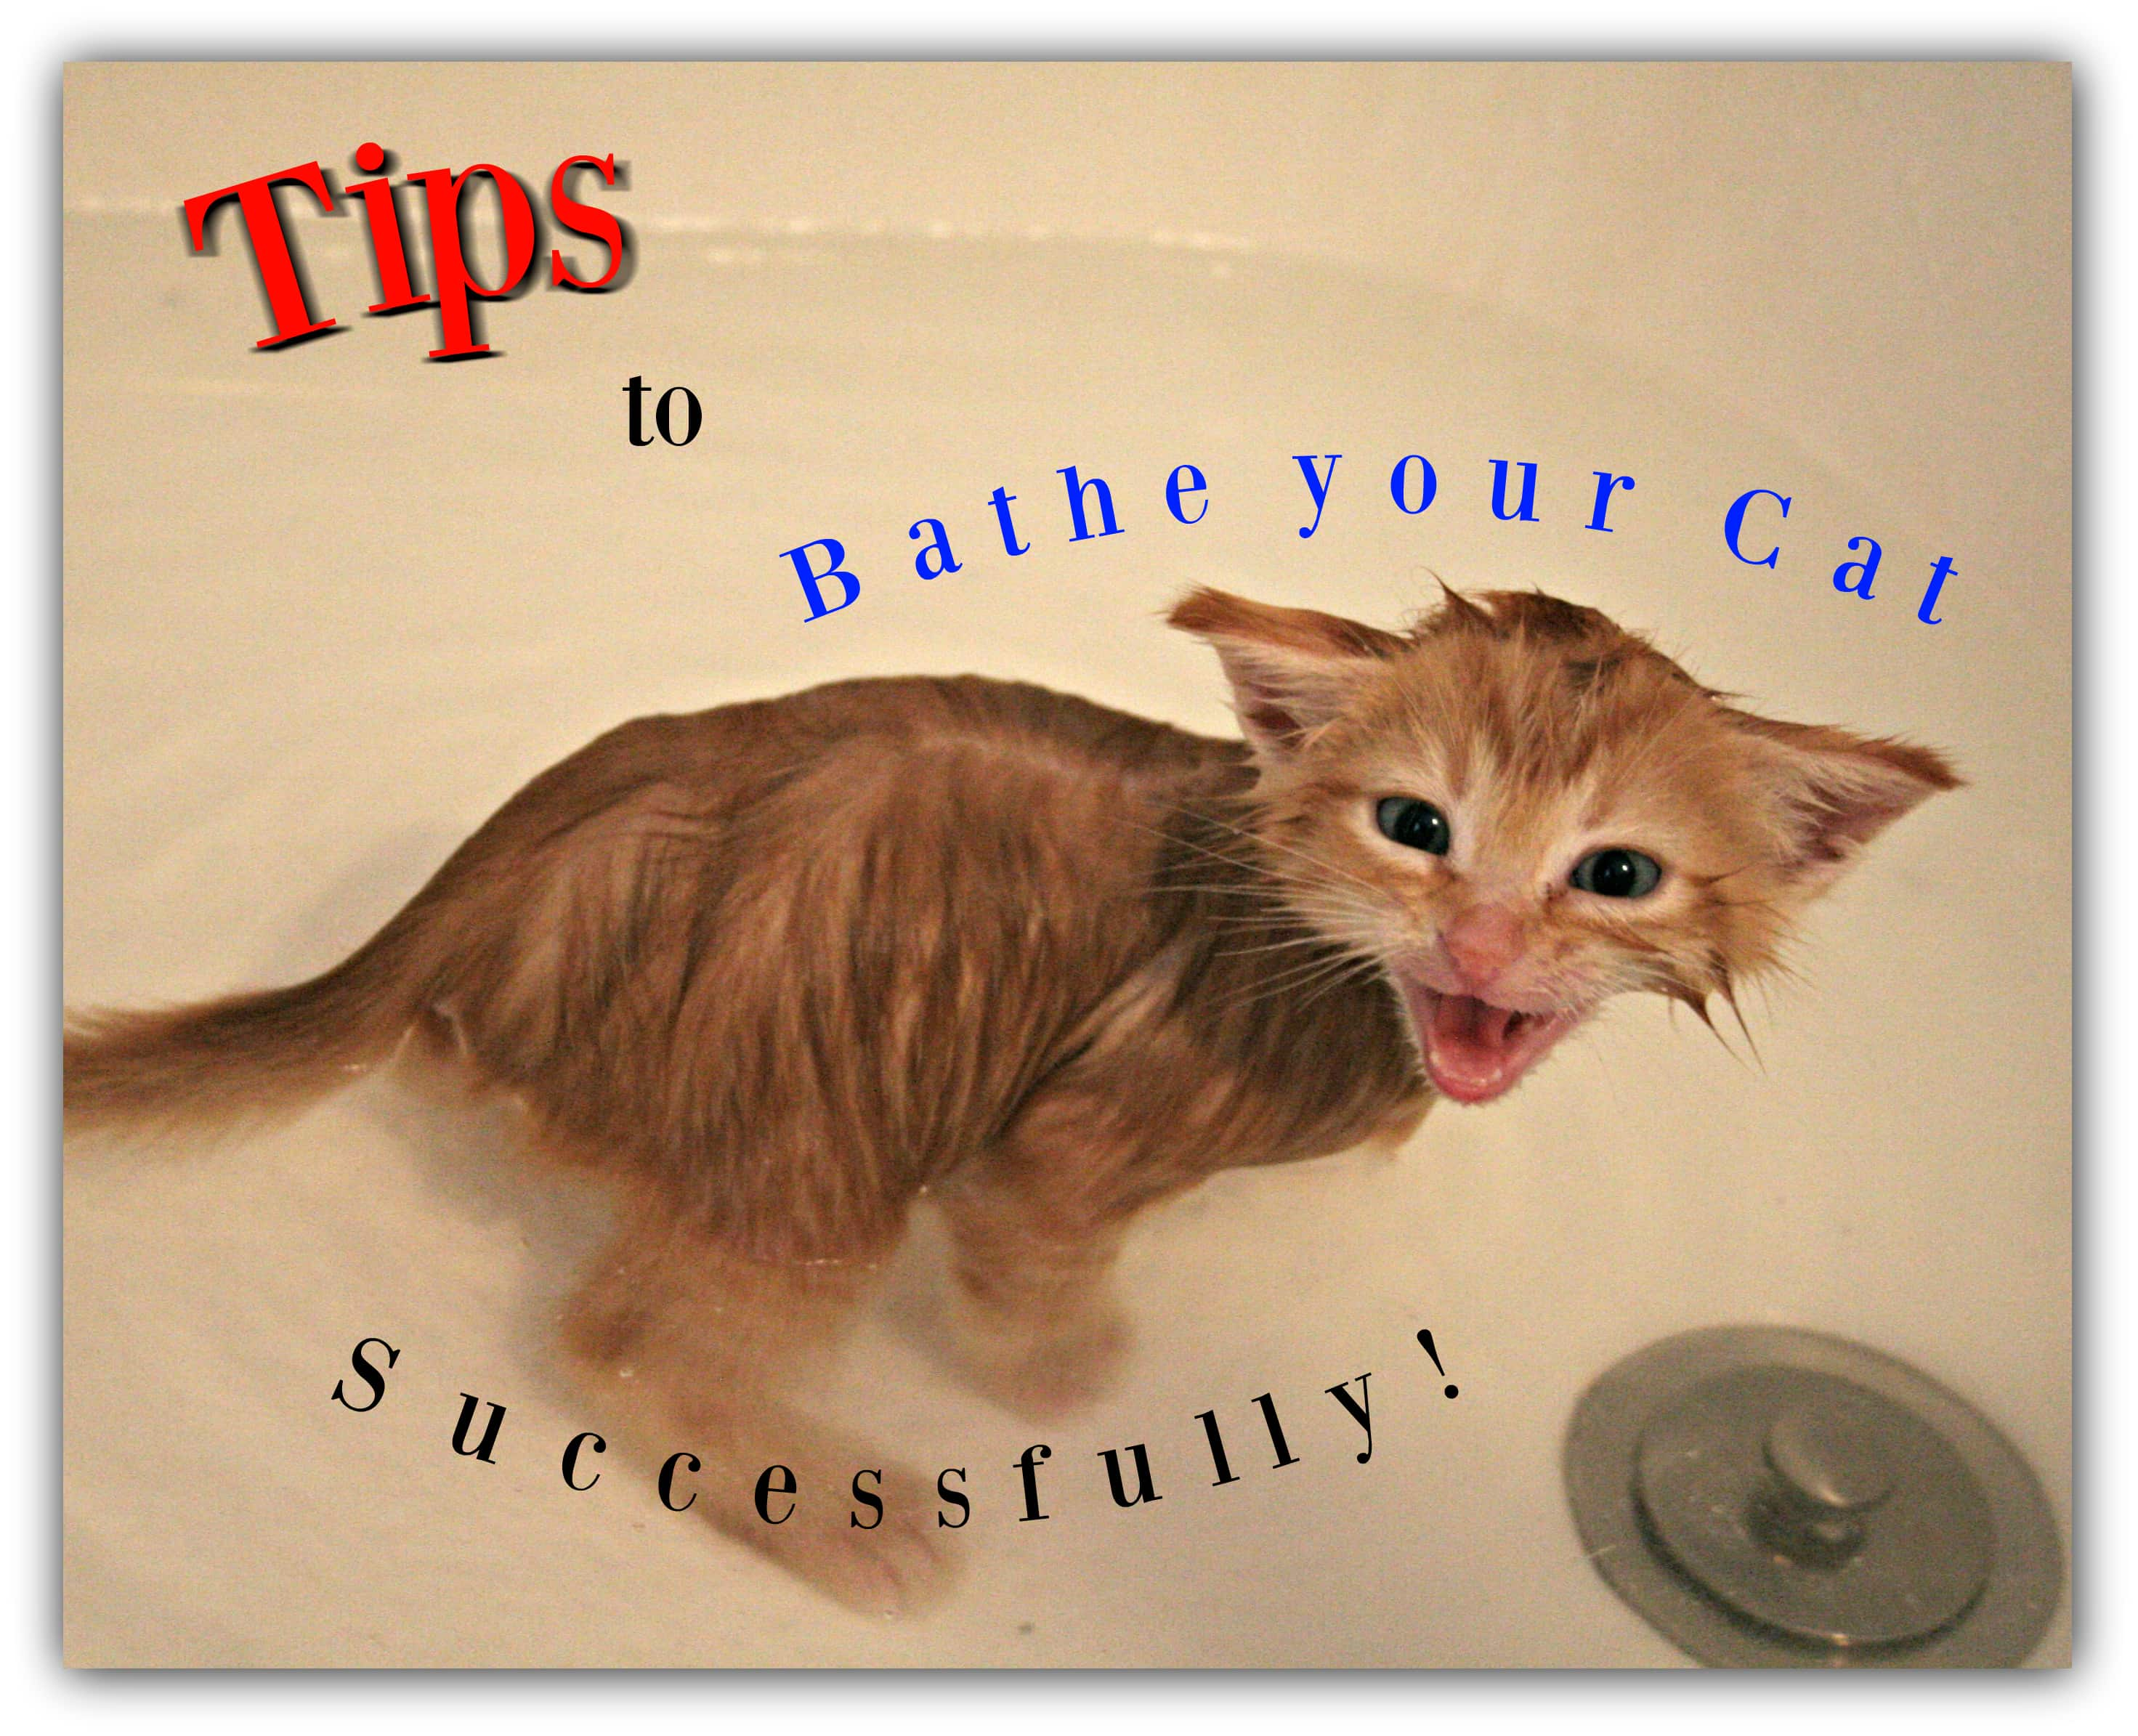 tips to bathe your